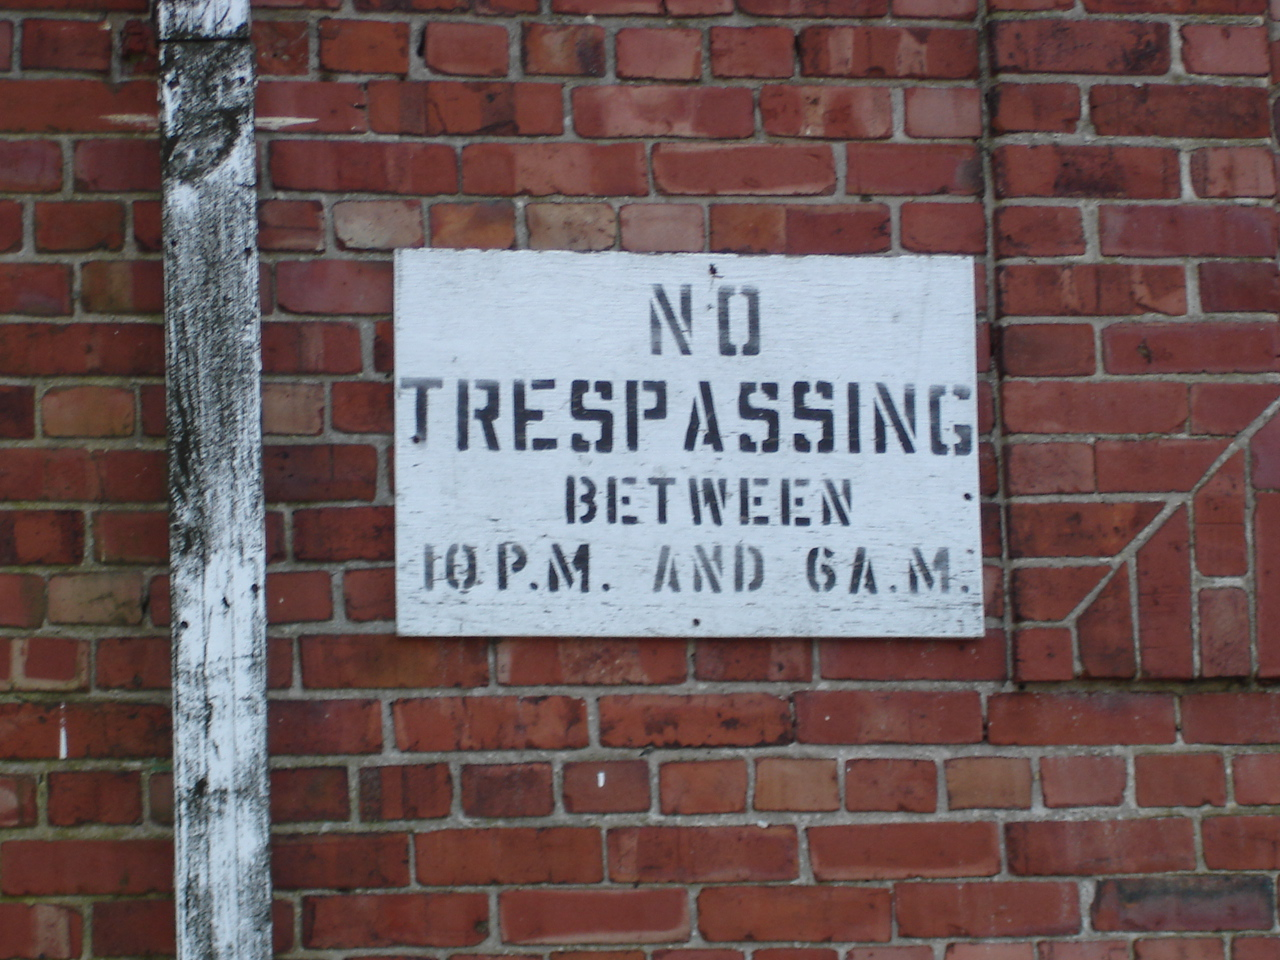 It's OK to trespass during the day.